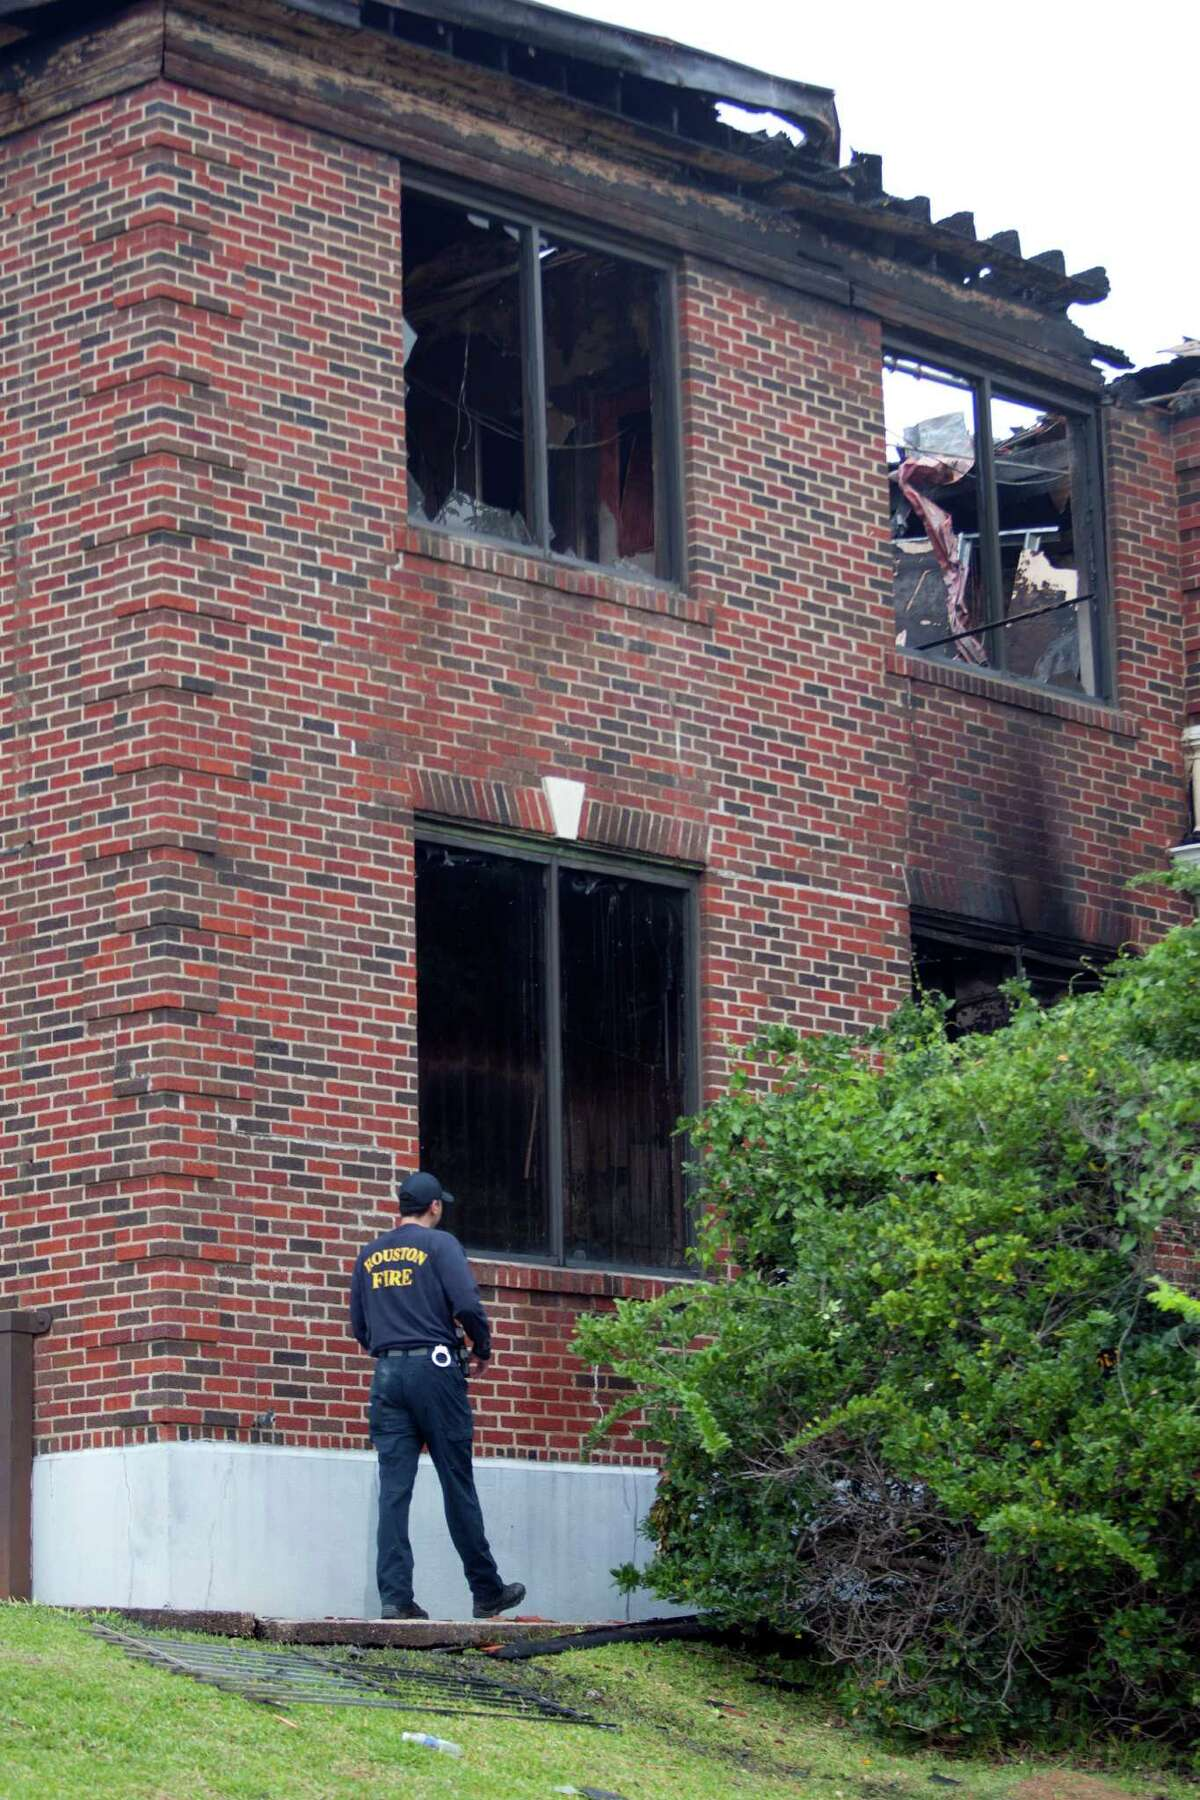 Arson investigators investigate a fire in part of the former Jefferson Davis Hospital after an early morning two-alarm fire gutted the building known to many as one of the most haunted buildings Thursday, April 25, 2013, in Houston. The blaze broke out at about 2 a.m. near downtown Houston at a building adjacent to the old Jefferson Davis Hospital on Dart near Elder, according to the Houston Fire Department. The blaze was on the third floor and shot through the roof, but firefighters quickly extinguished the flames. Officials said the building was at one time the nurses' quarters. ( Johnny Hanson / Houston Chronicle )